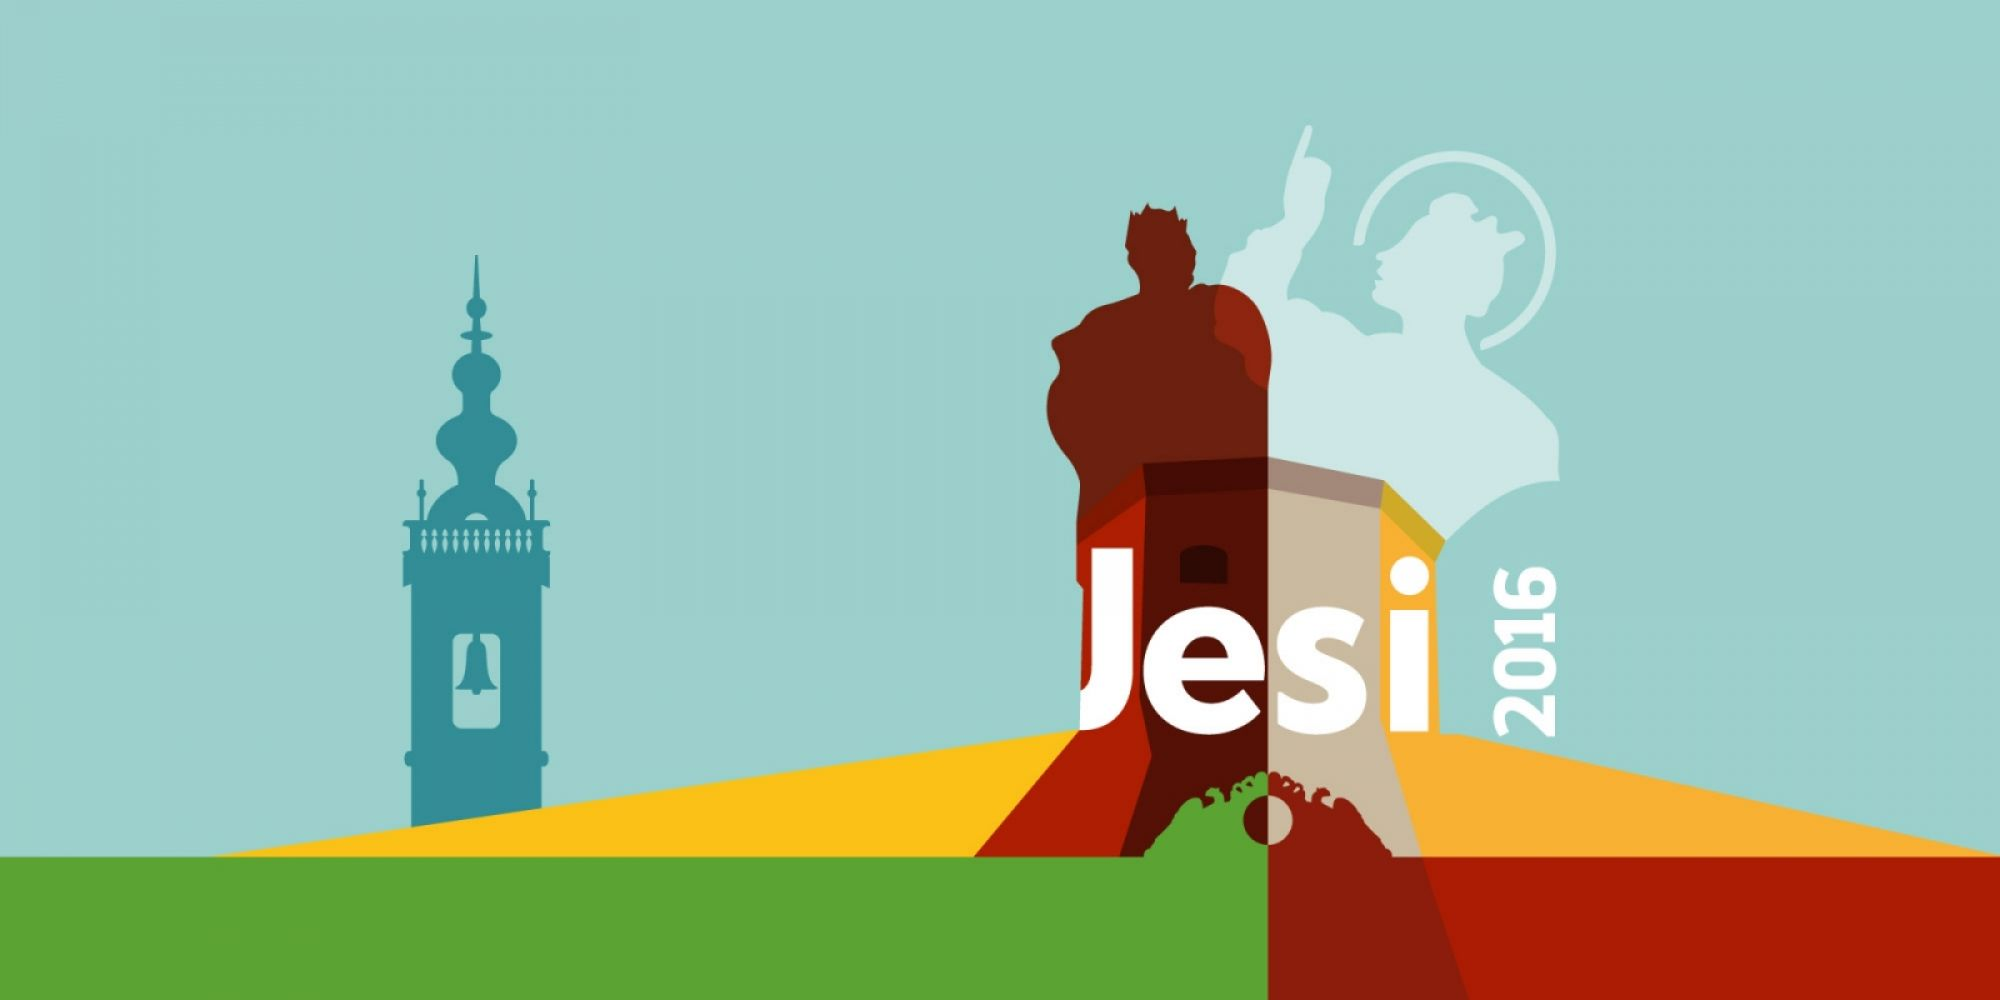 Jesi 2016 - Visite d'estate